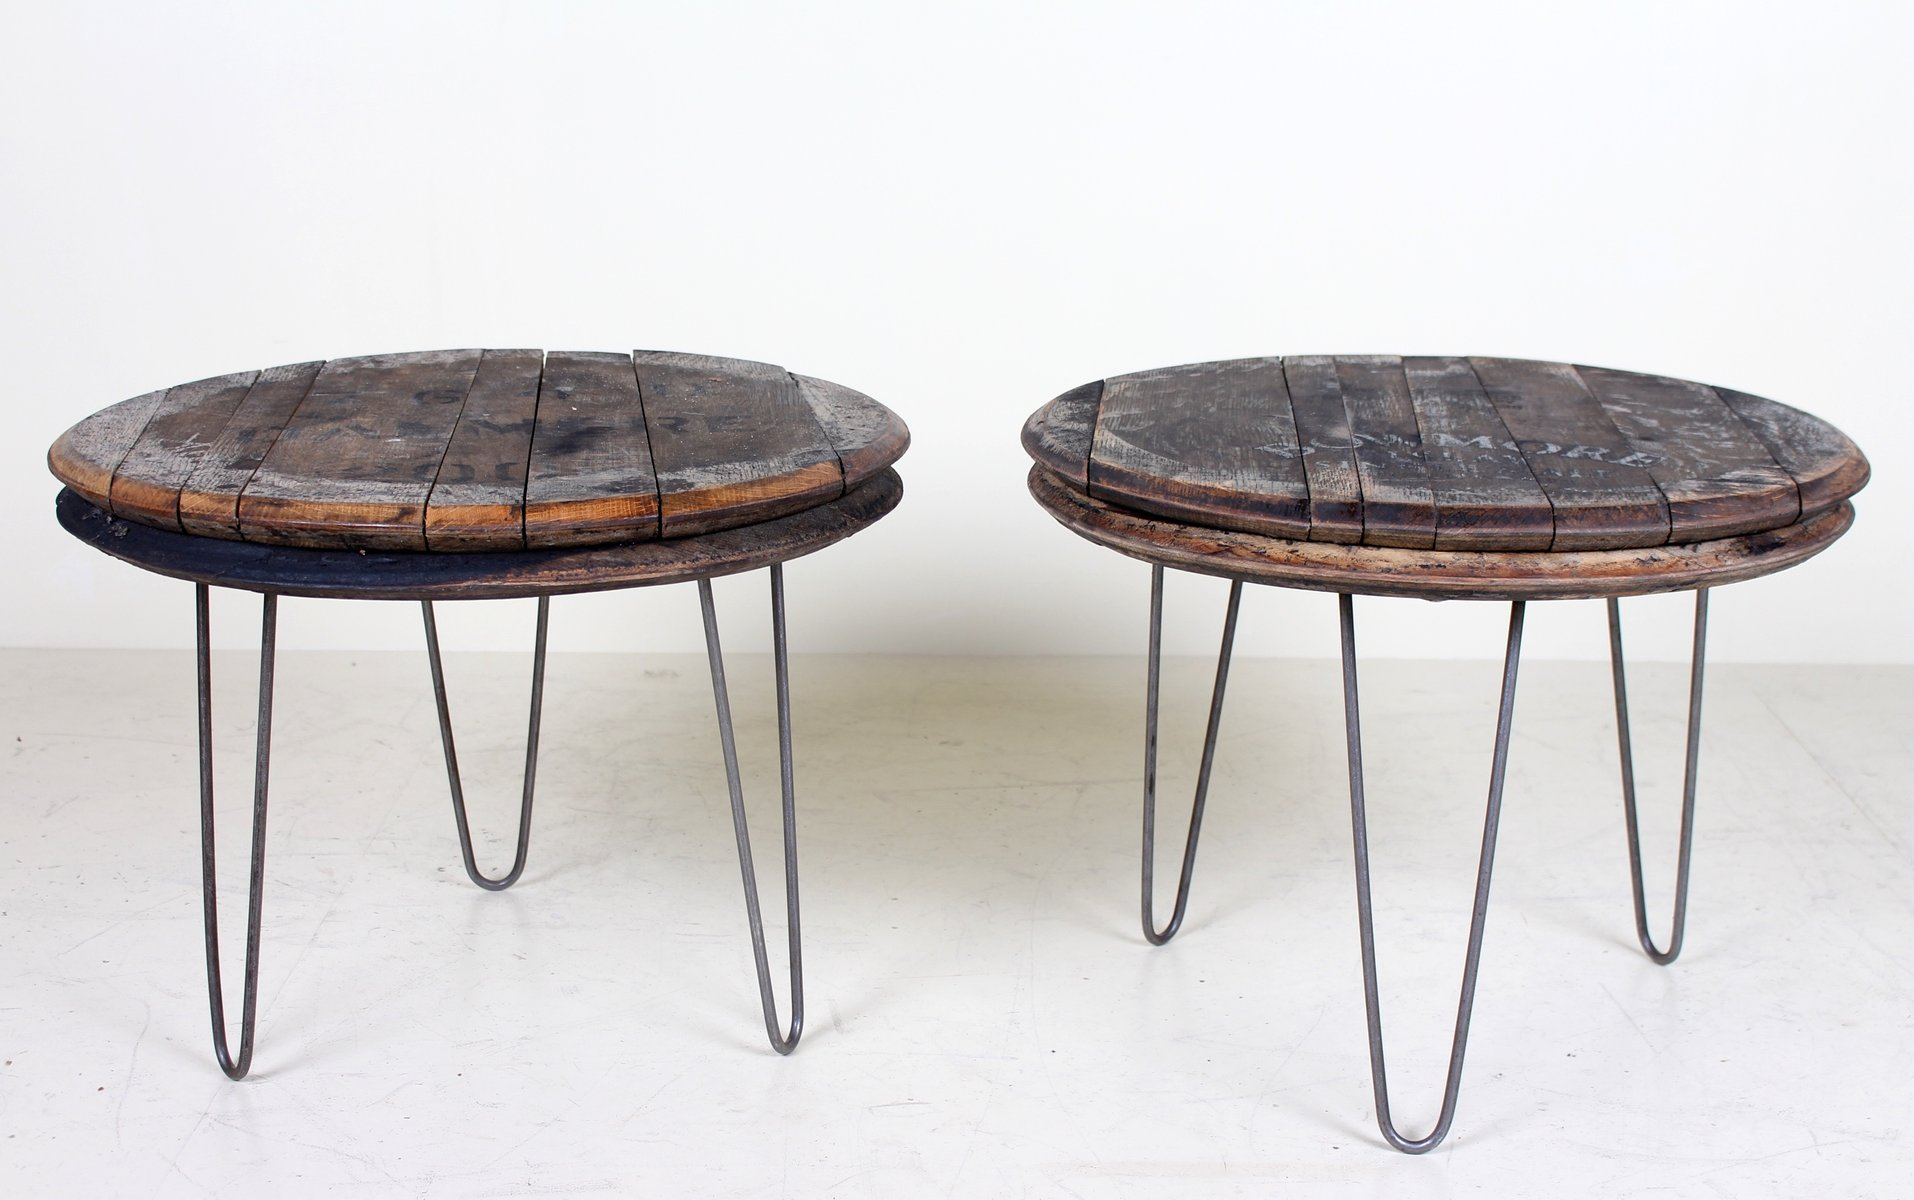 Vintage Industrial Coffee Tables with Oak Whiskey Barrel Lids, Set of ...